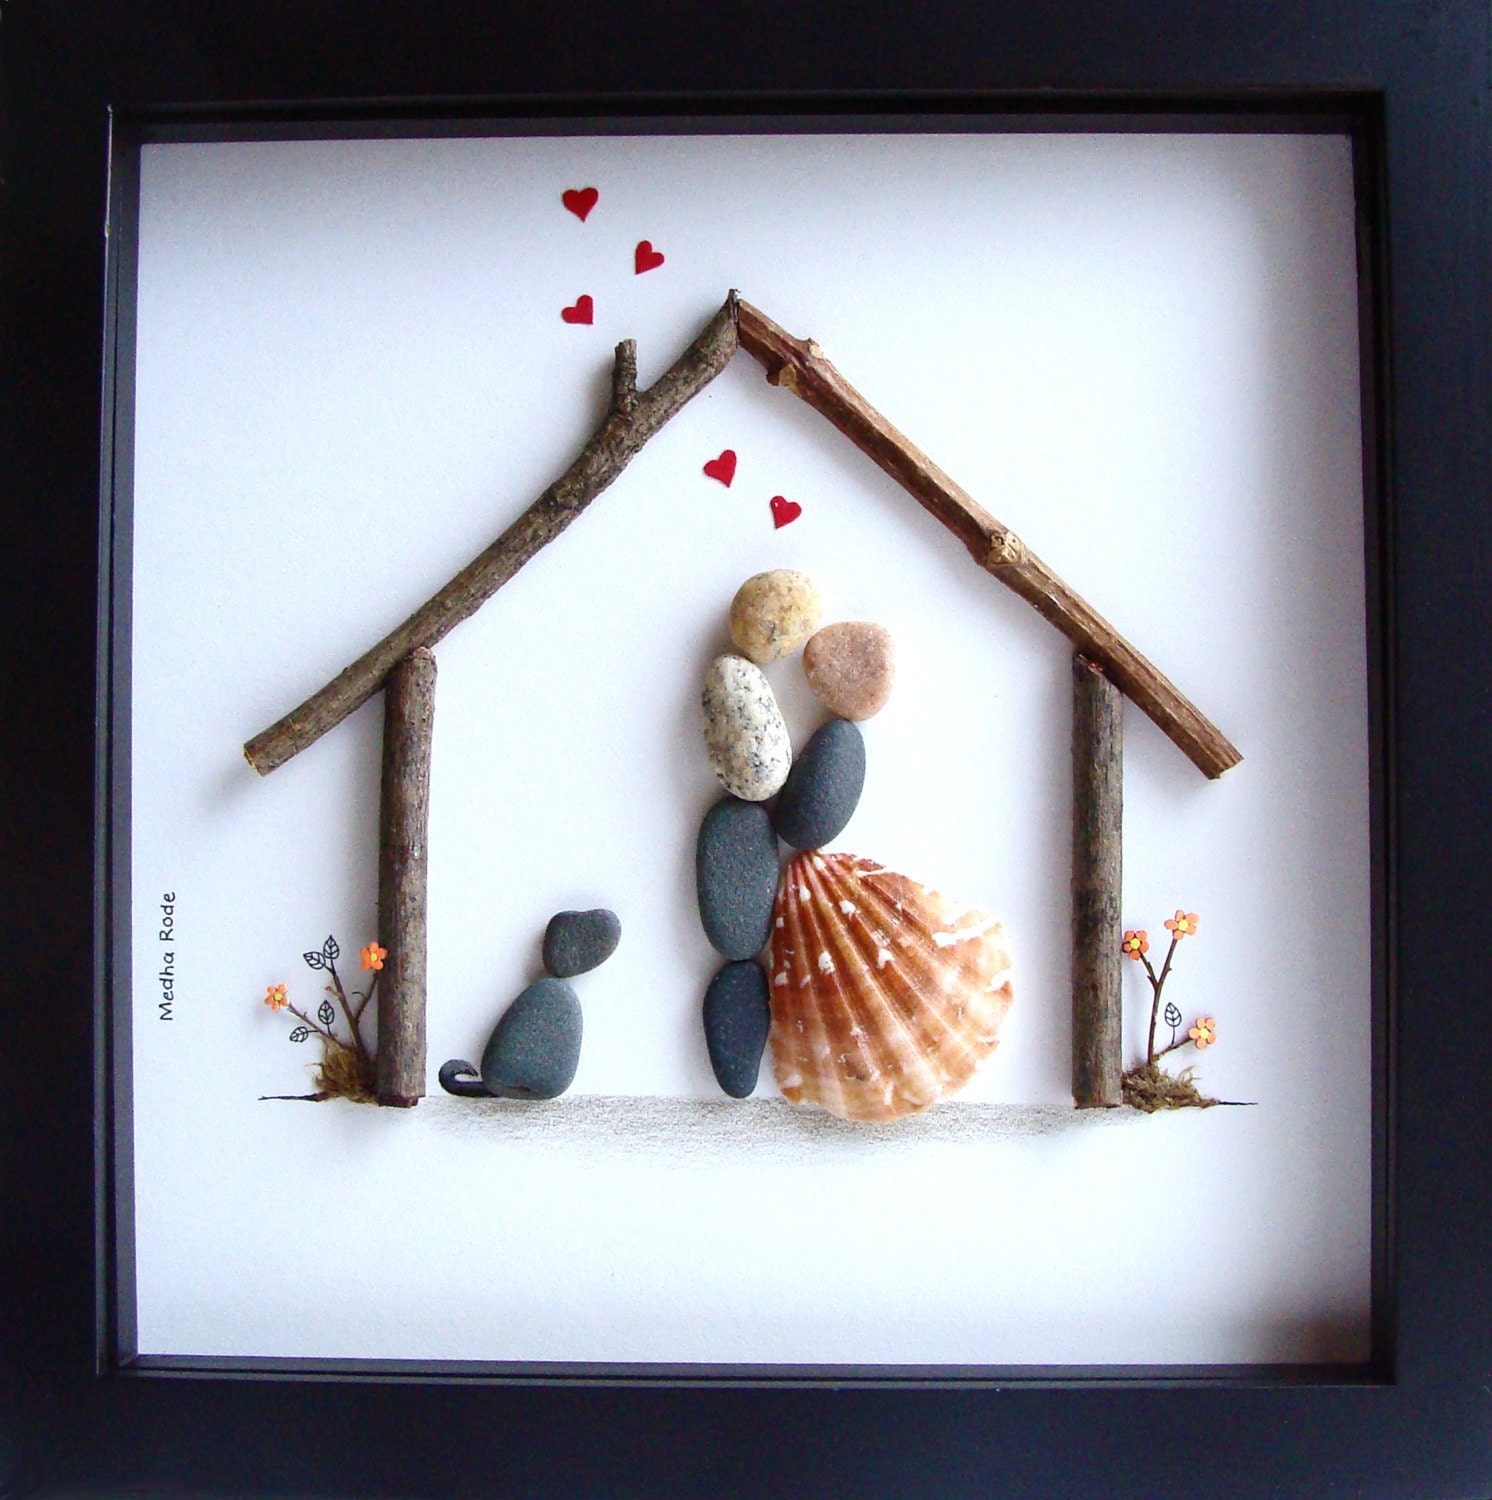 Unique wedding gift customized wedding gift pebble art unique for What to give as a wedding gift